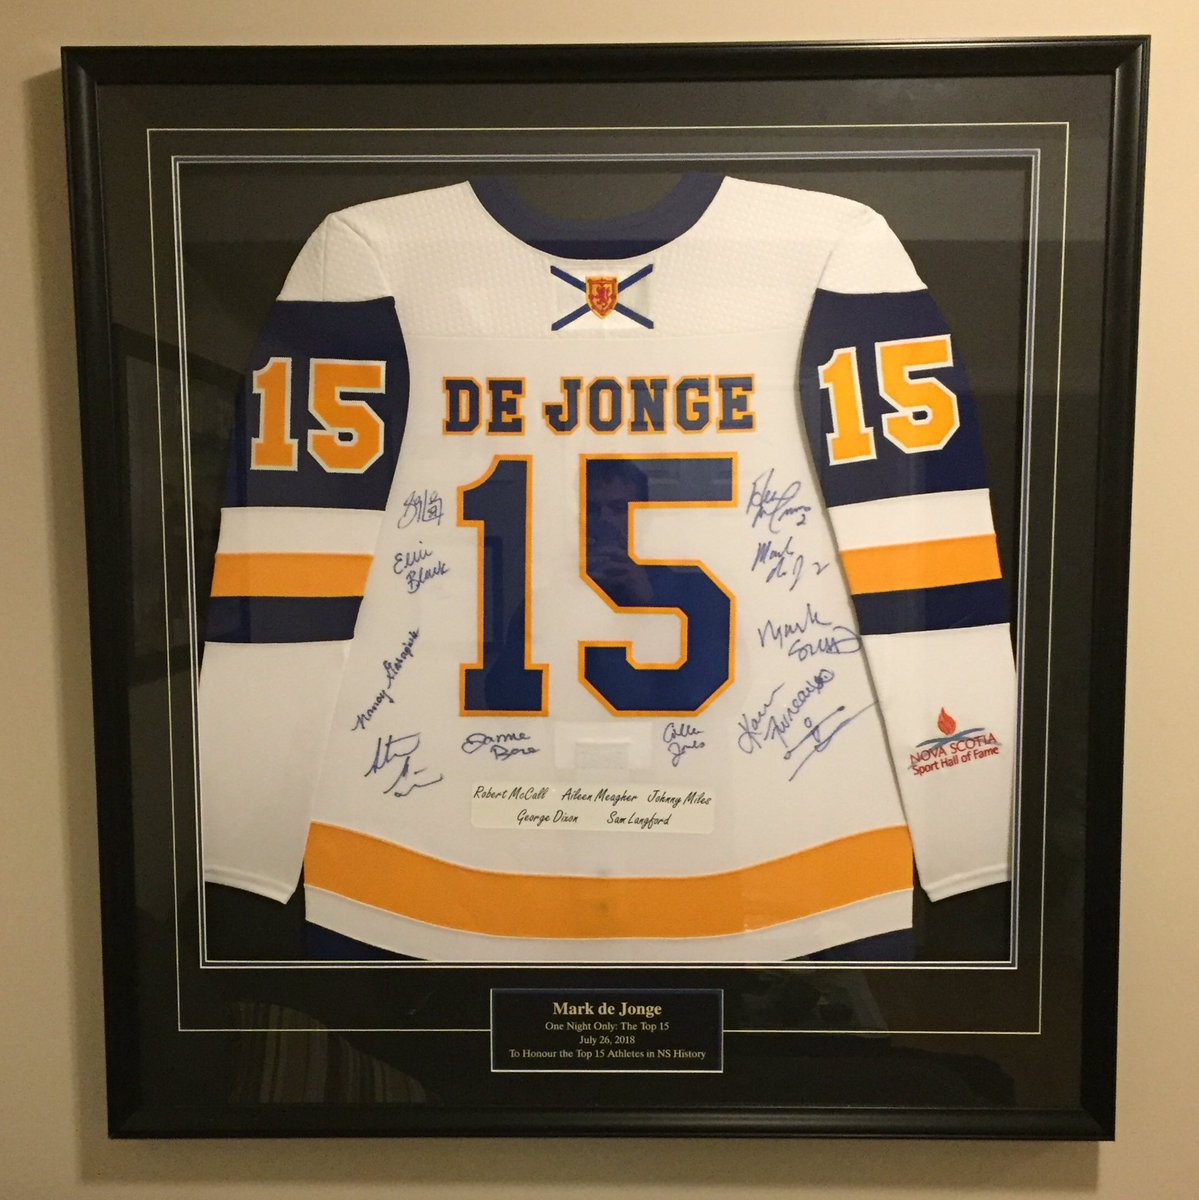 I put up my @NSSHF Top 15 jersey today and it looks great. Thanks very much to @FrameworthSport for framing this for me! https://t.co/8okK7BONd6